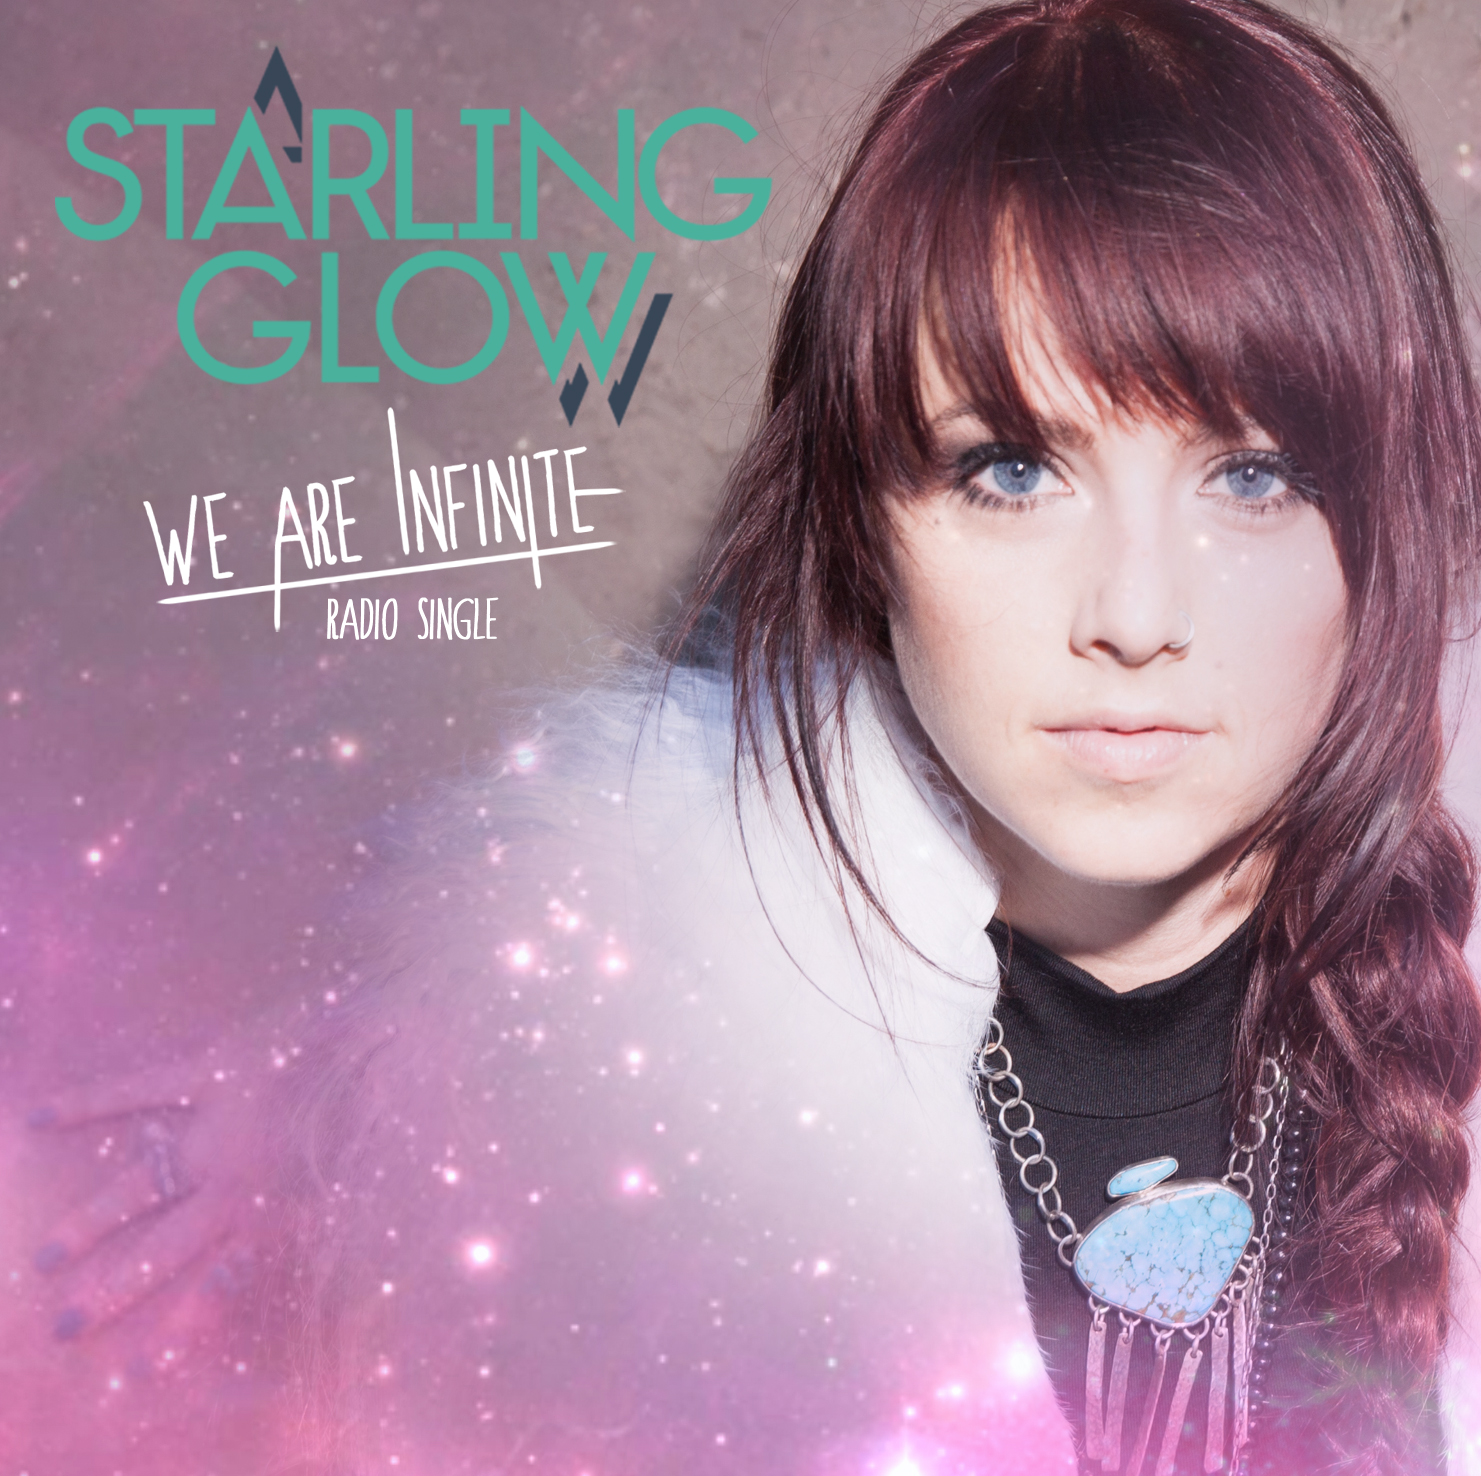 StarlingGlow_cover_radiosingle.jpg